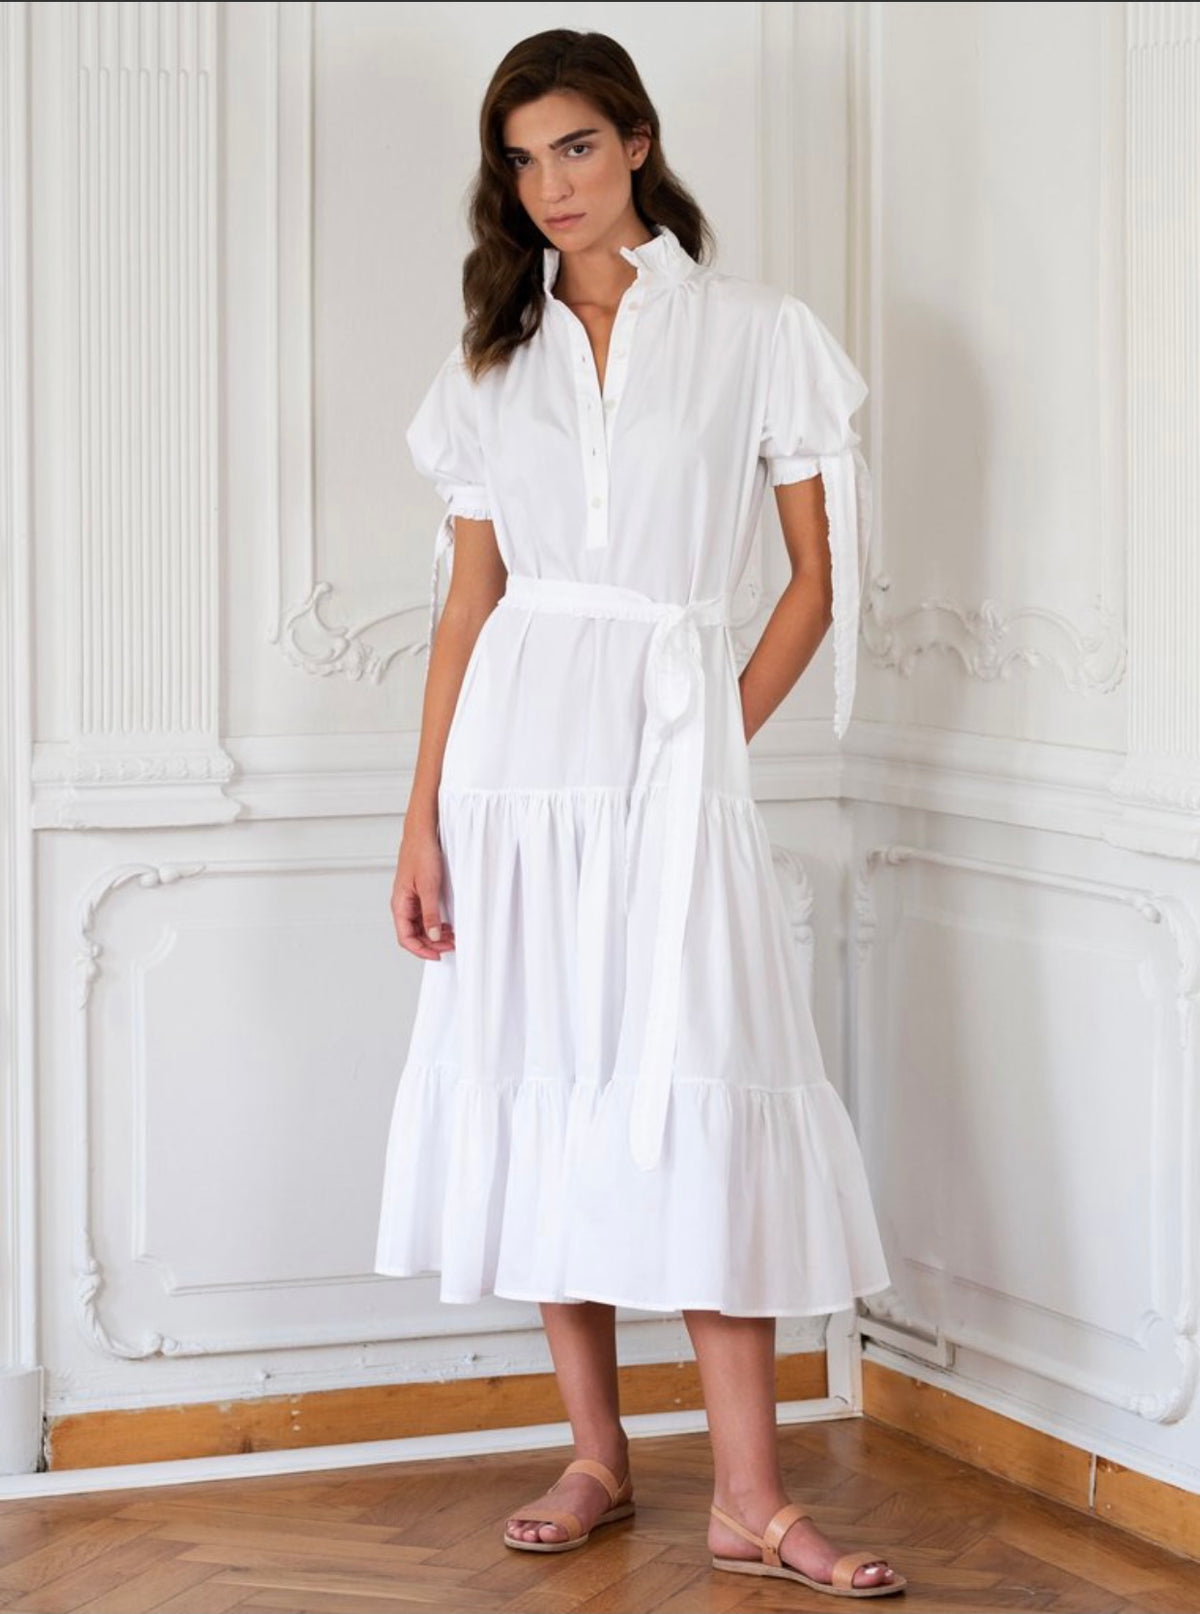 Evi Grintela Puff Sleeve Shirtdress in White Poplin